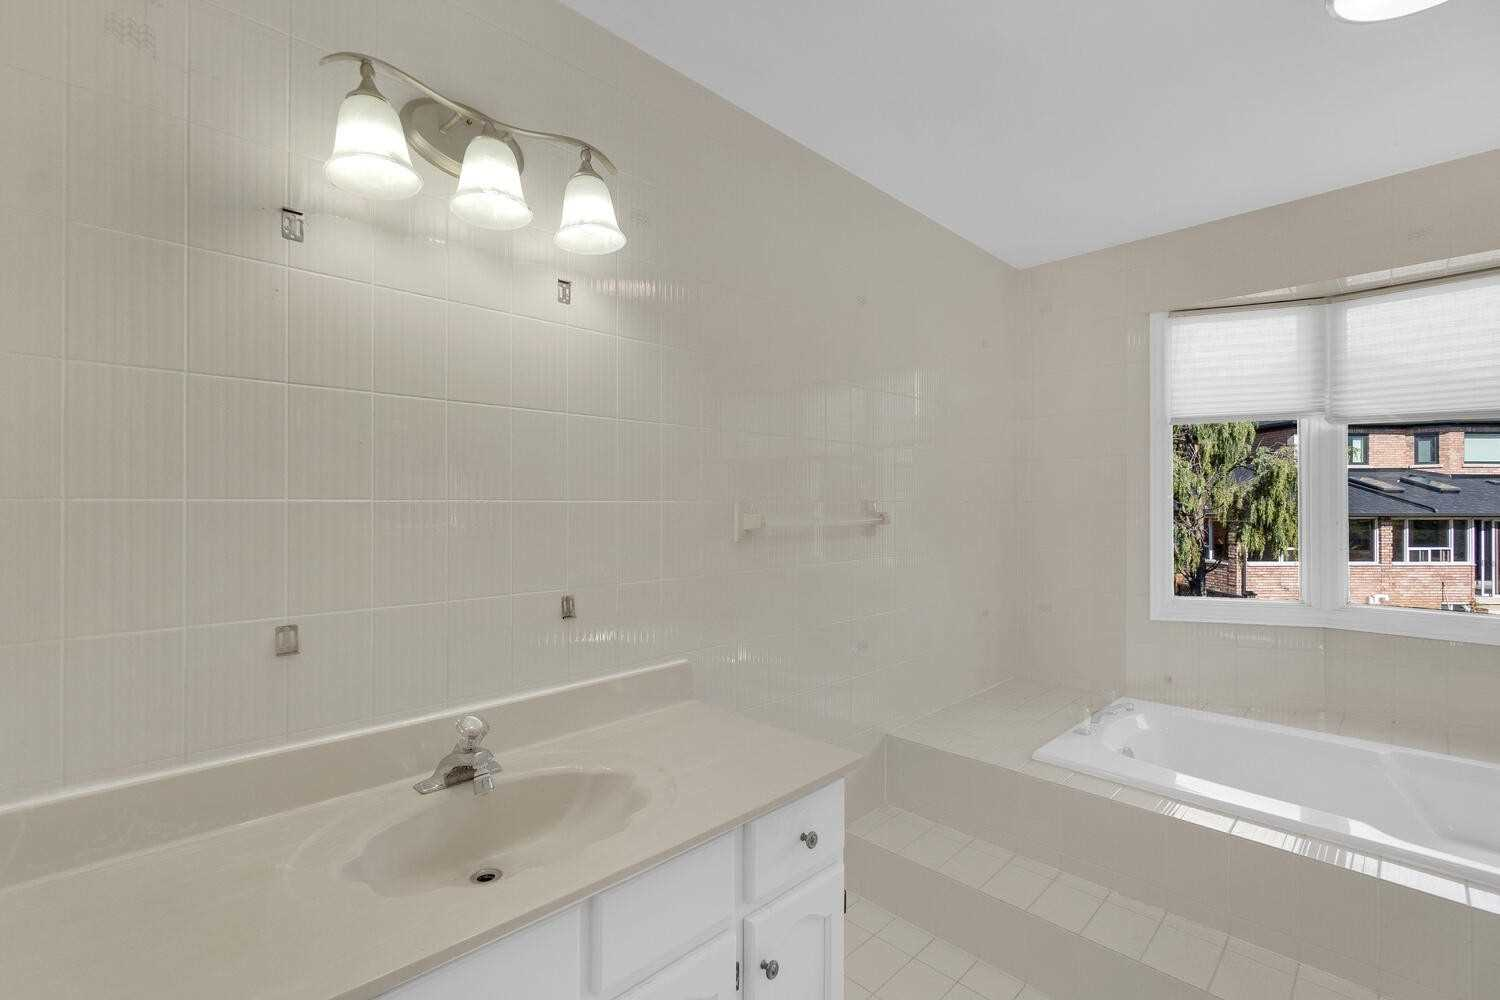 Detached house For Lease In Vaughan - 71 Woodgreen Dr, Vaughan, Ontario, Canada L4L3B2 , 4 Bedrooms Bedrooms, ,3 BathroomsBathrooms,Detached,For Lease,Woodgreen